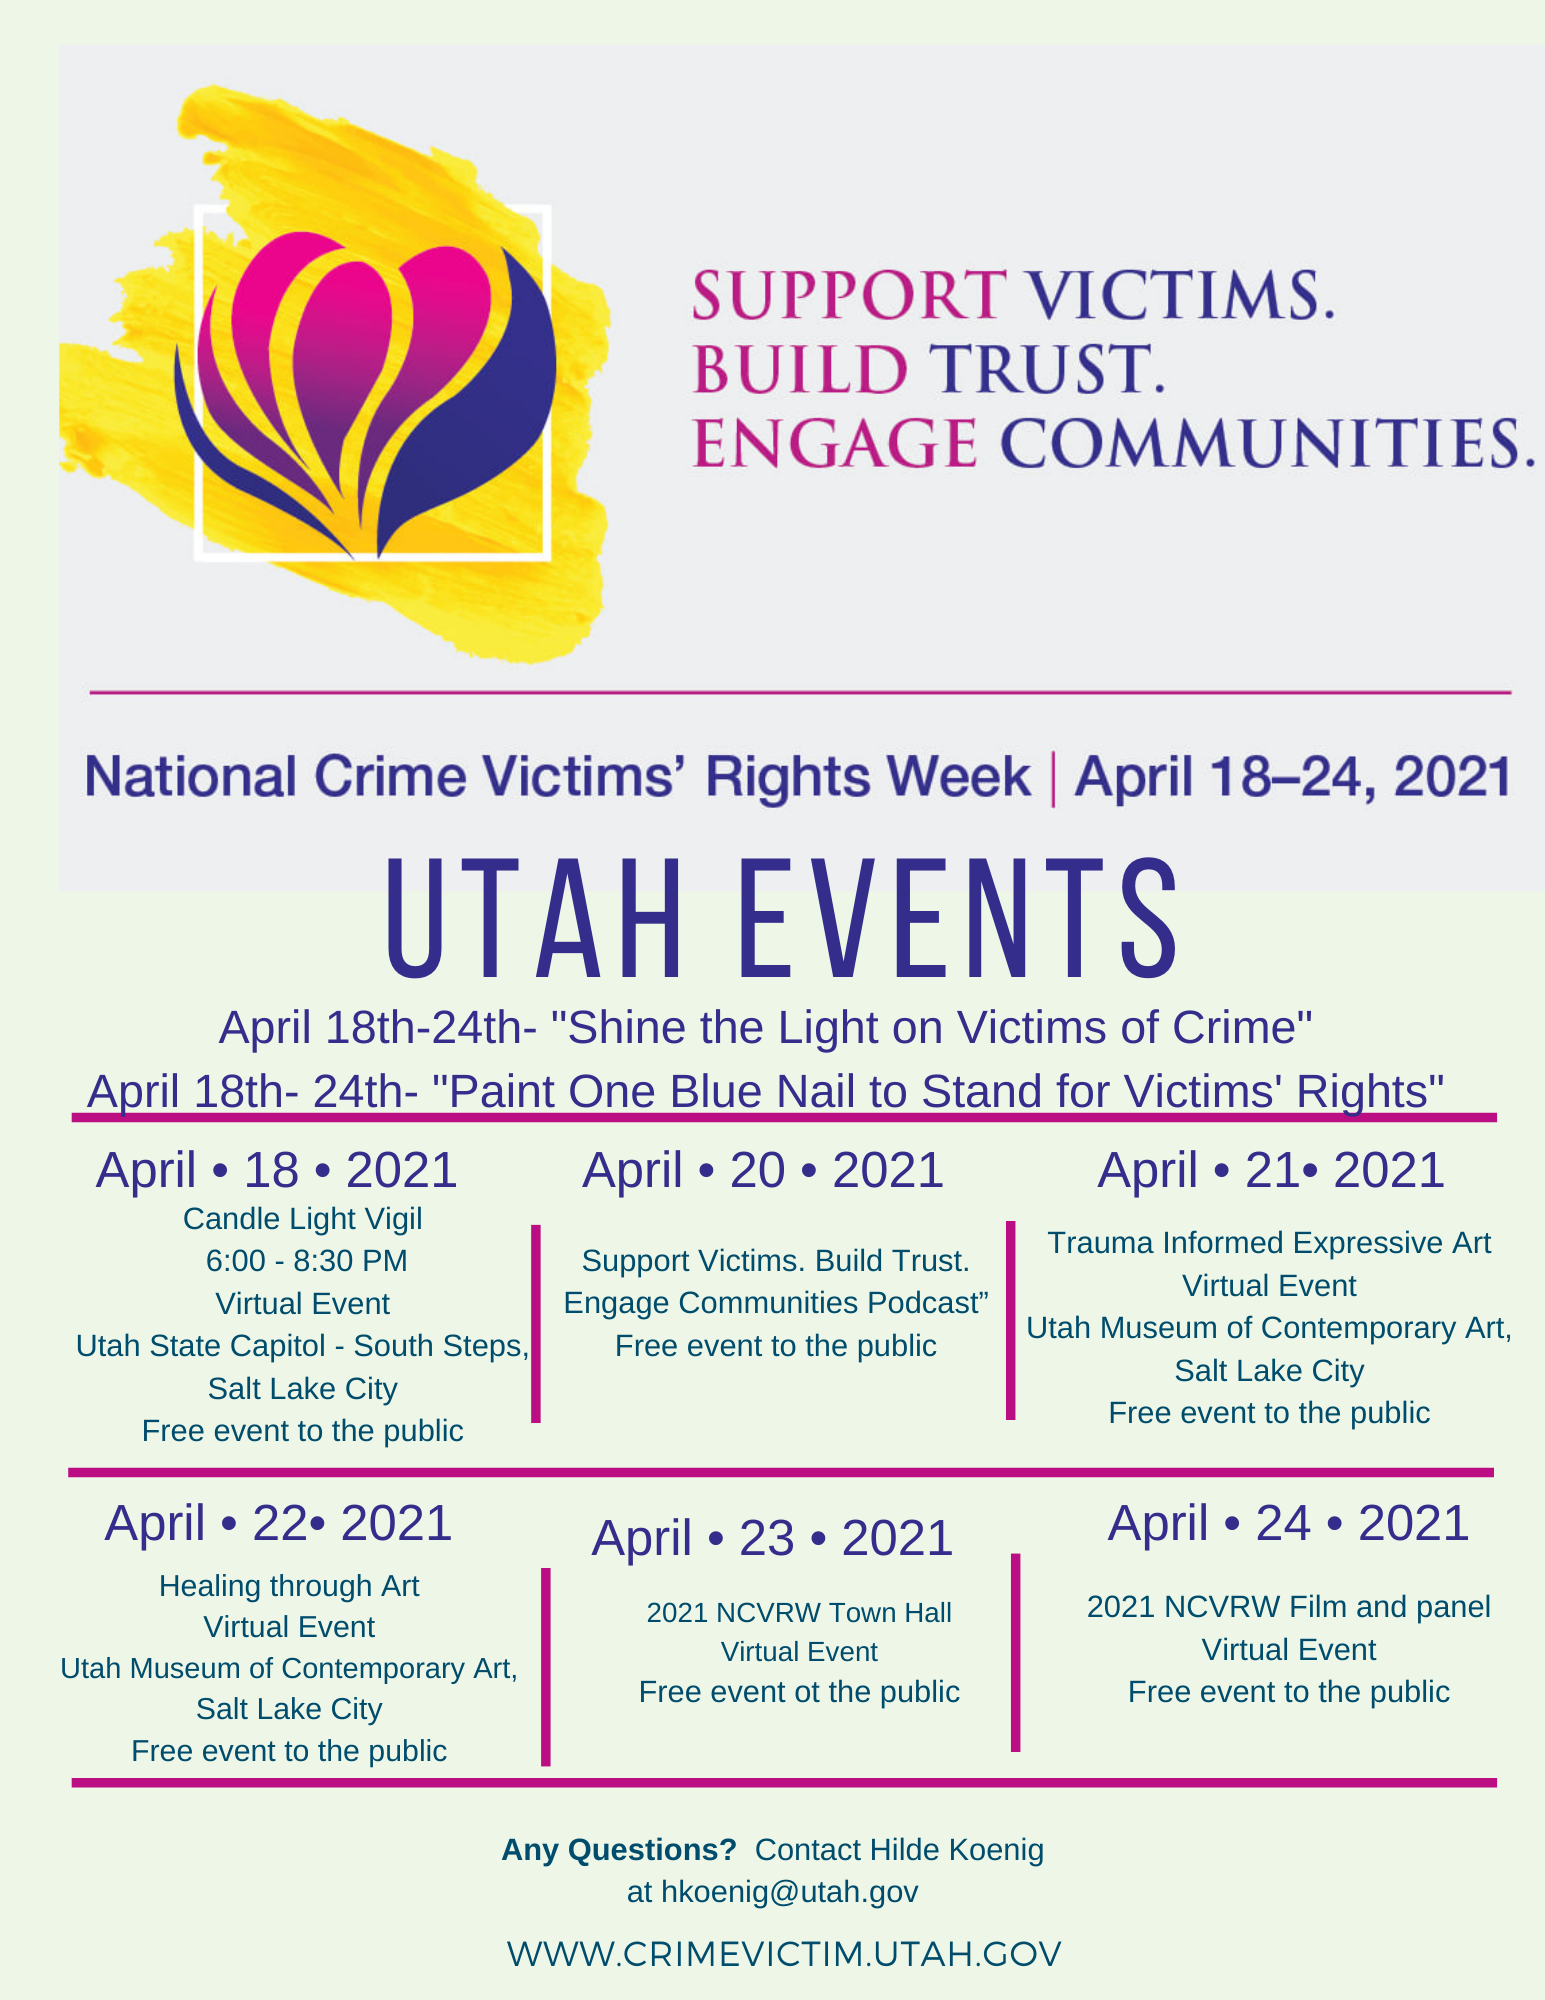 A list of Utah events for National Crime Victims' Rights week during the week of April 18-24, 2021